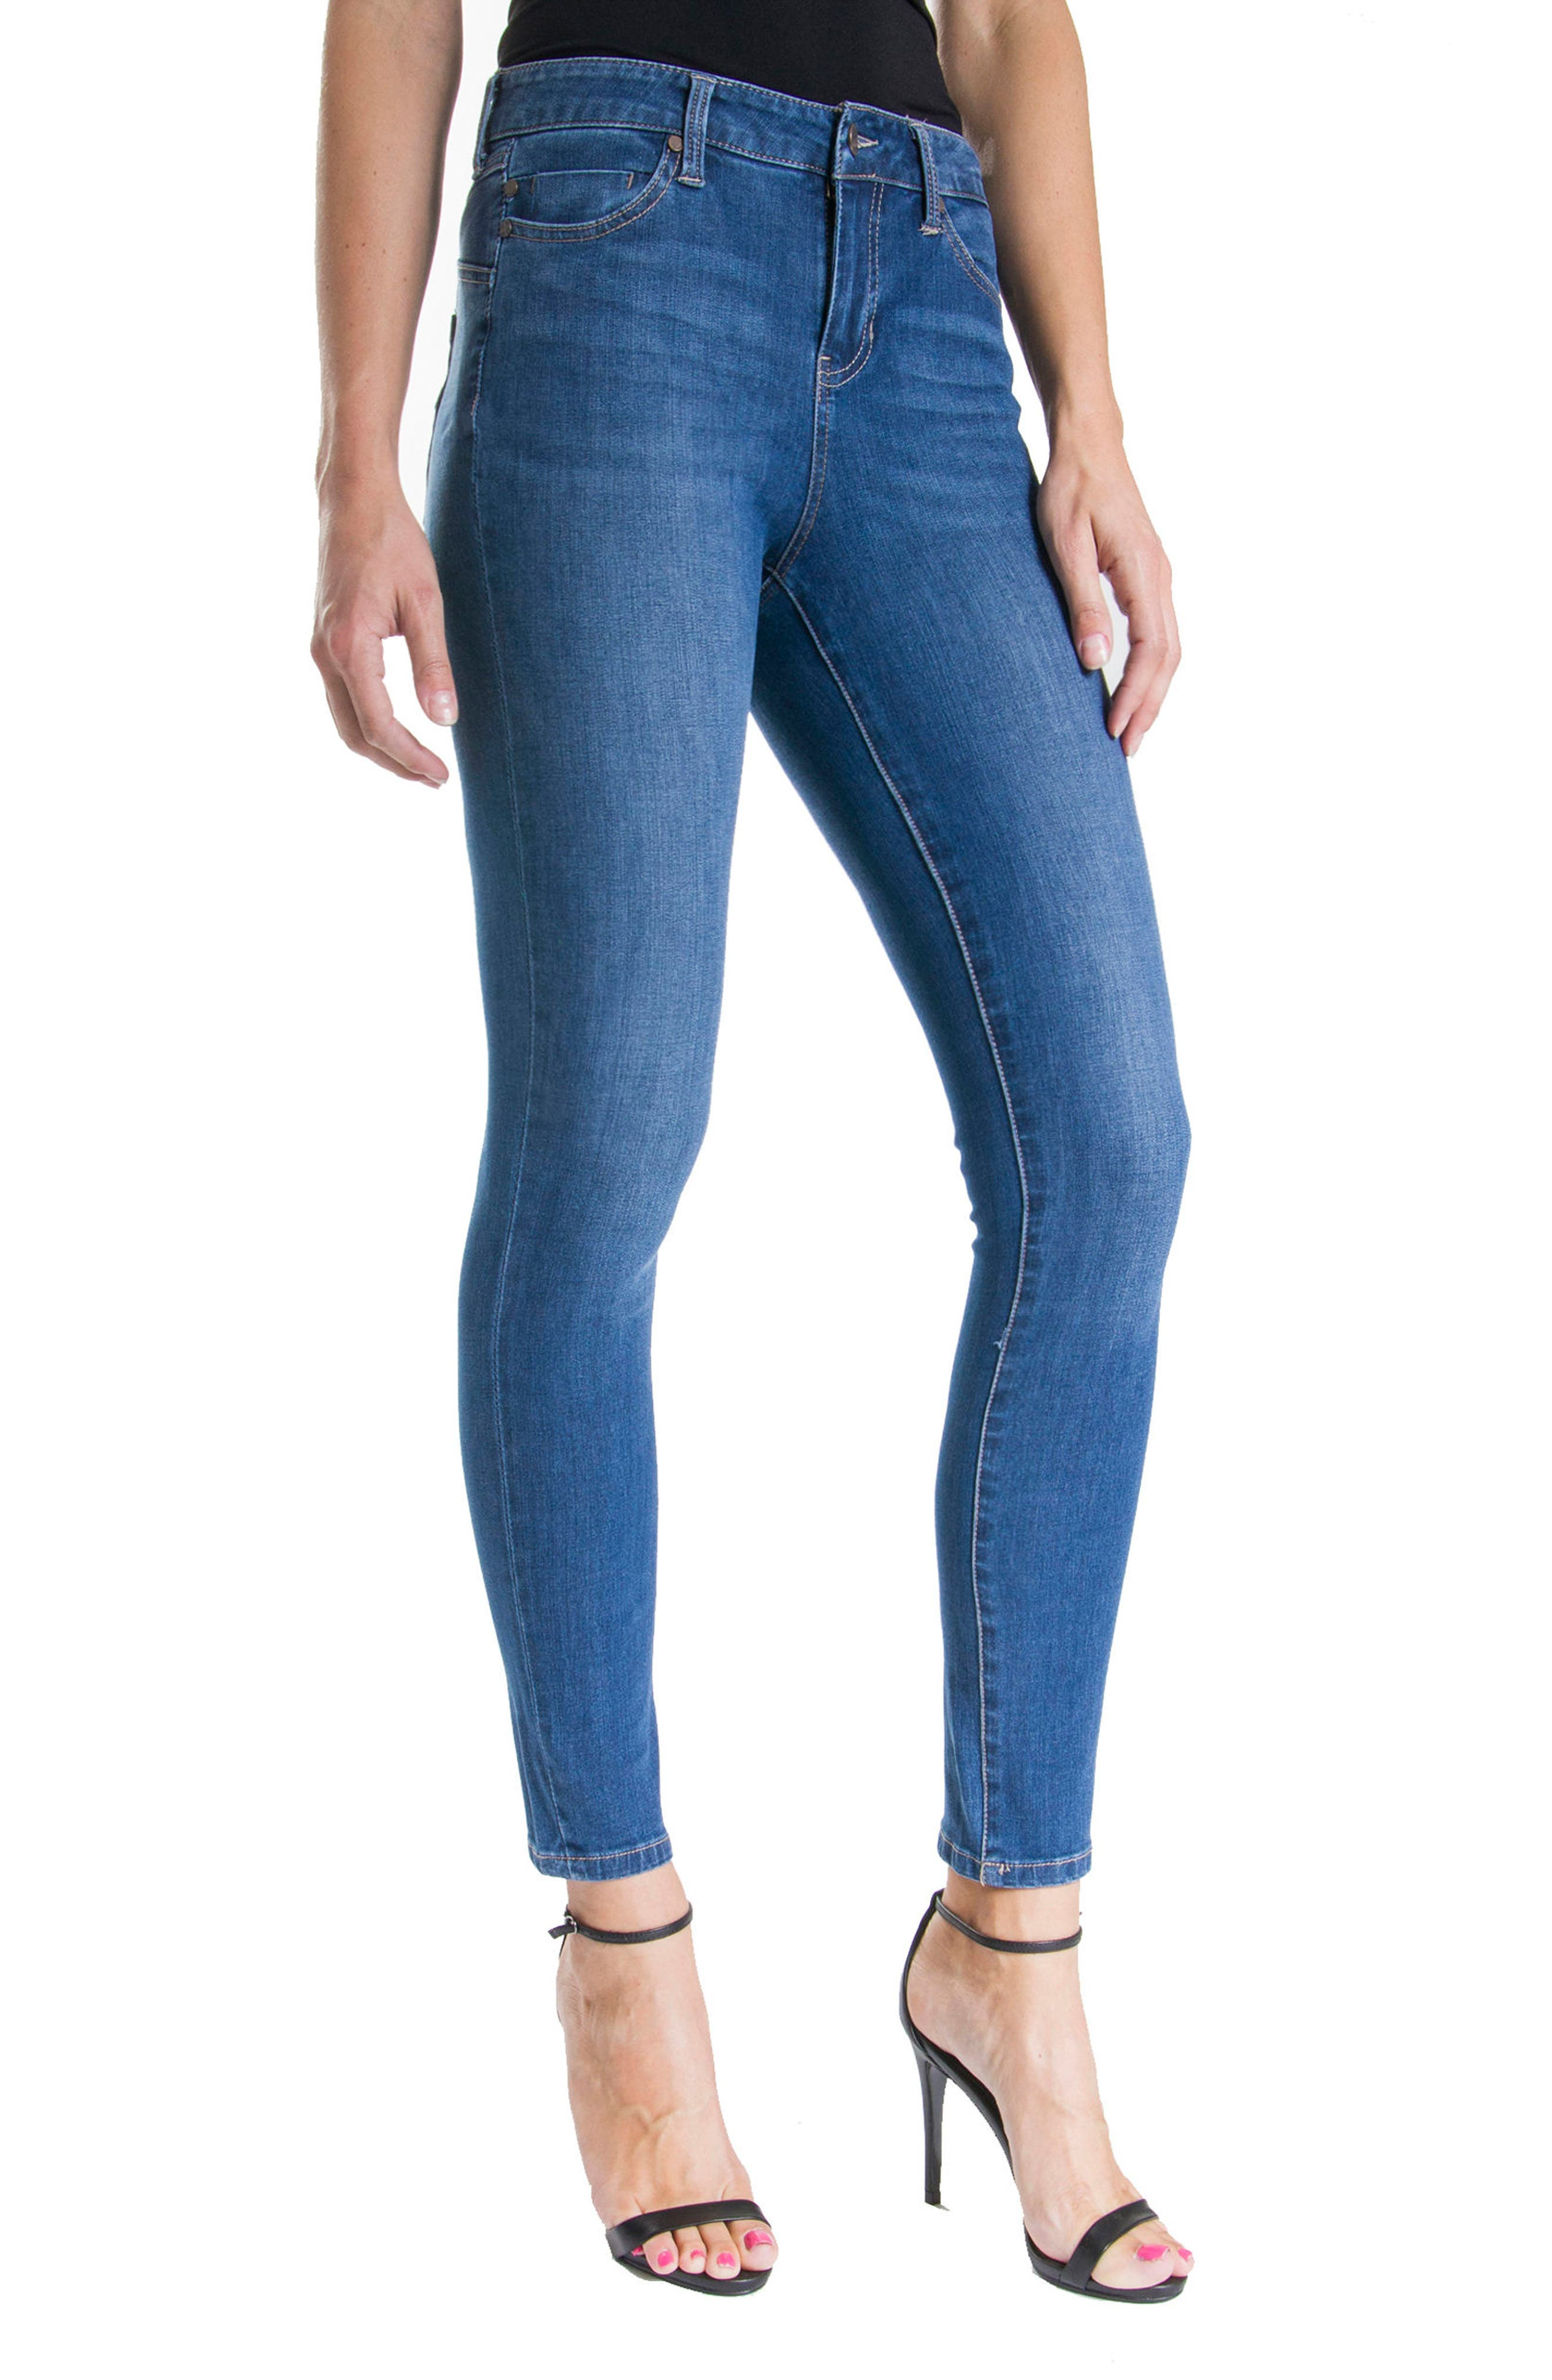 Jeans Company Piper Hugger Lift Sculpt Ankle Skinny Jeans,                             Alternate thumbnail 9, color,